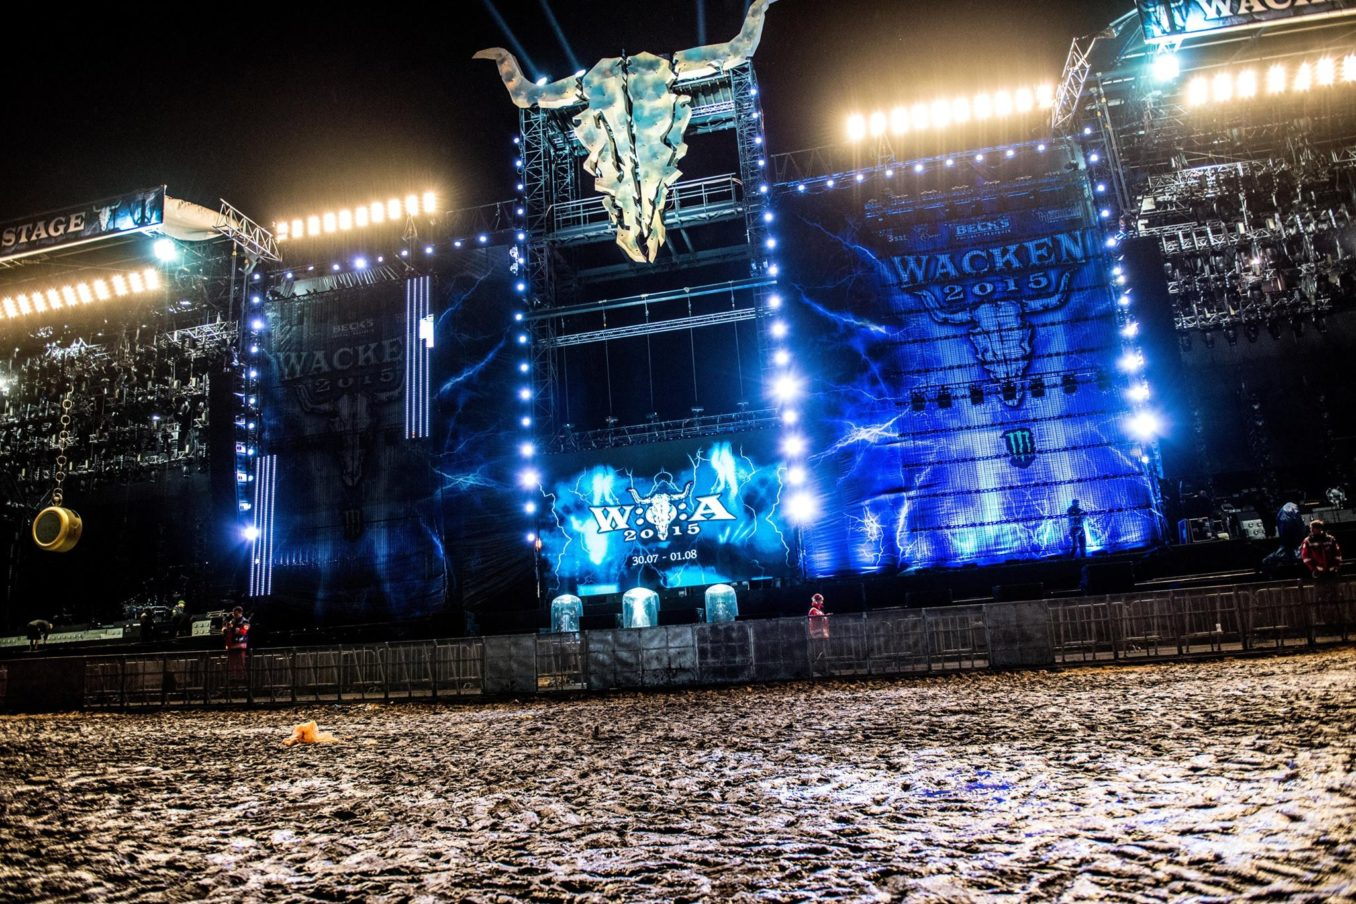 Photos from the Wacken festival